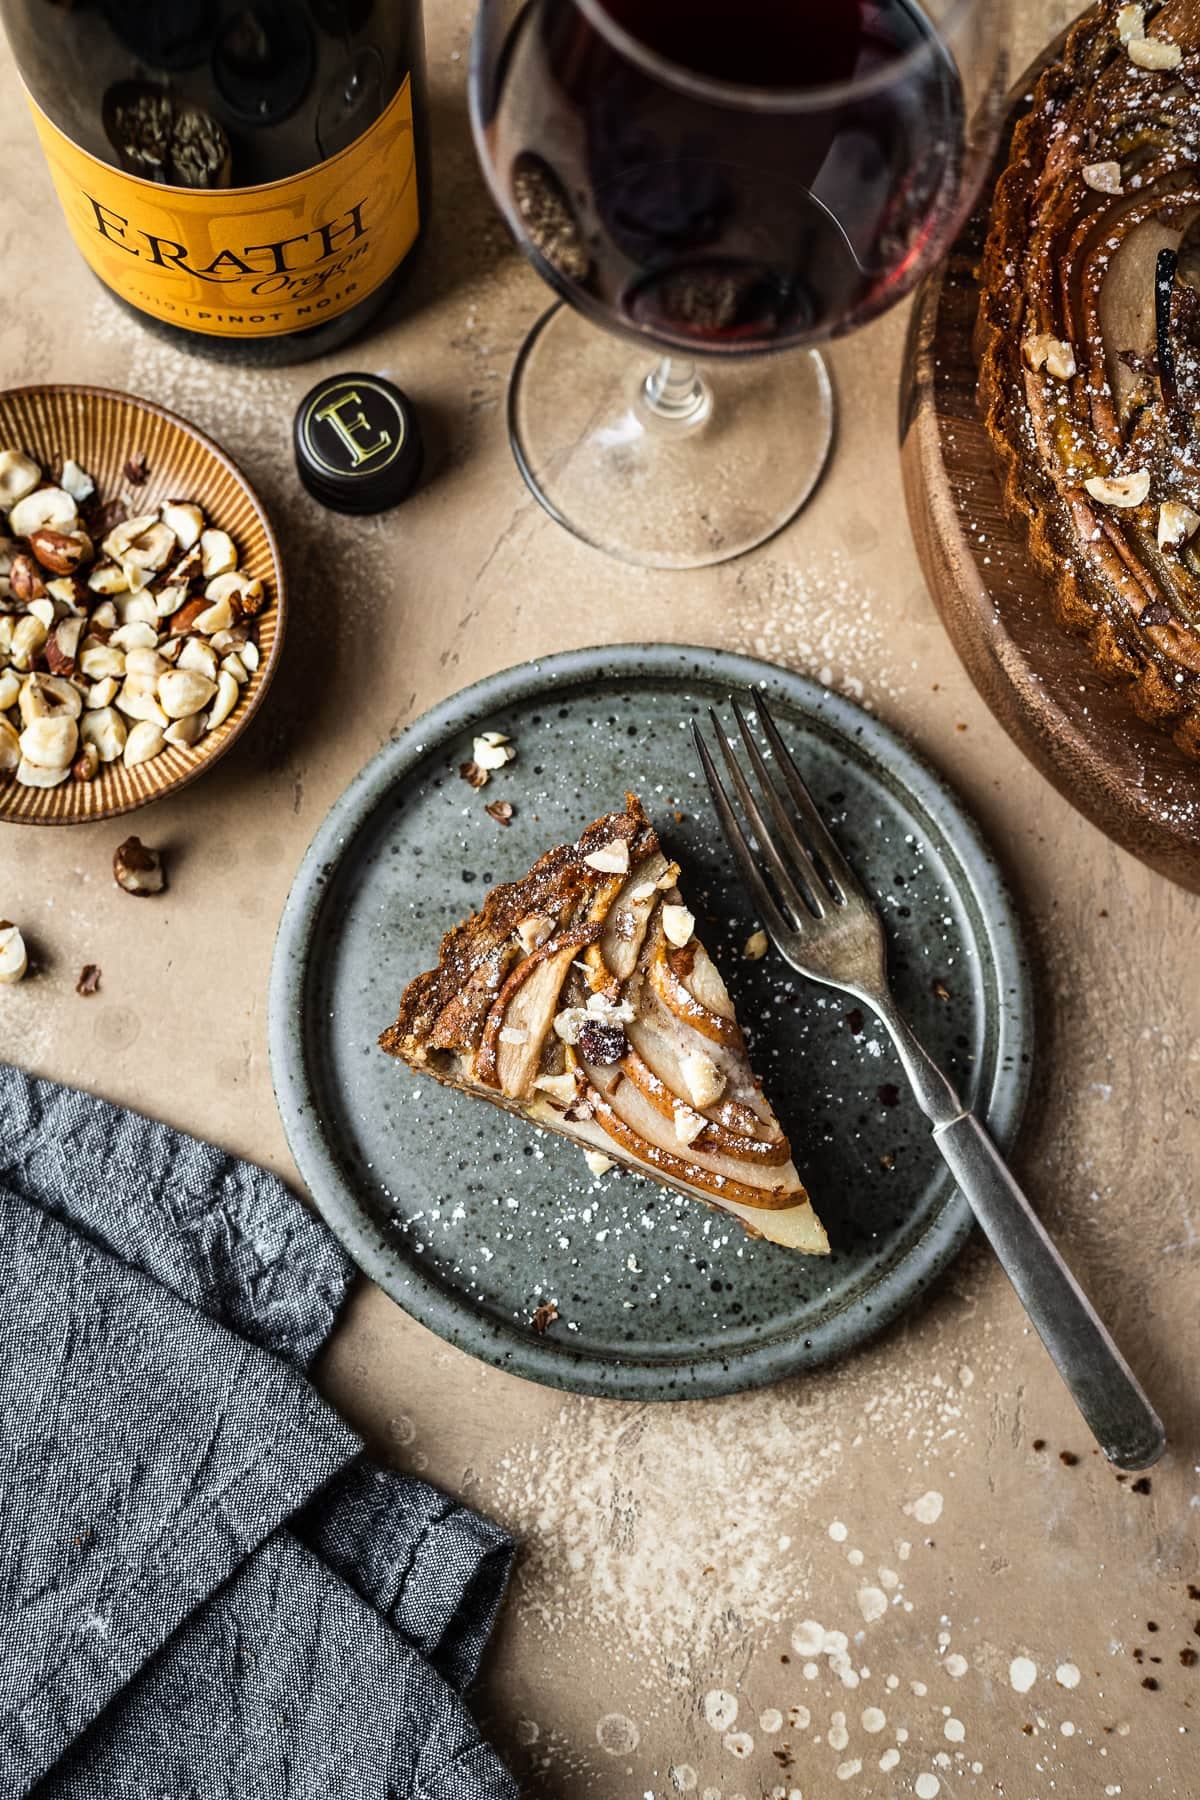 Pear hazelnut tart slice on a speckled grey blue ceramic plate. A vintage fork rests on the right side of the plate. The plate is on a warm tan textured stone background. A textured grey napkin is at the bottom left corner, and a small bowl of chopped hazelnuts is visible at top left along with a wine bottle and a glass of red wine at top. The remainder of the tart peeks out at top right.